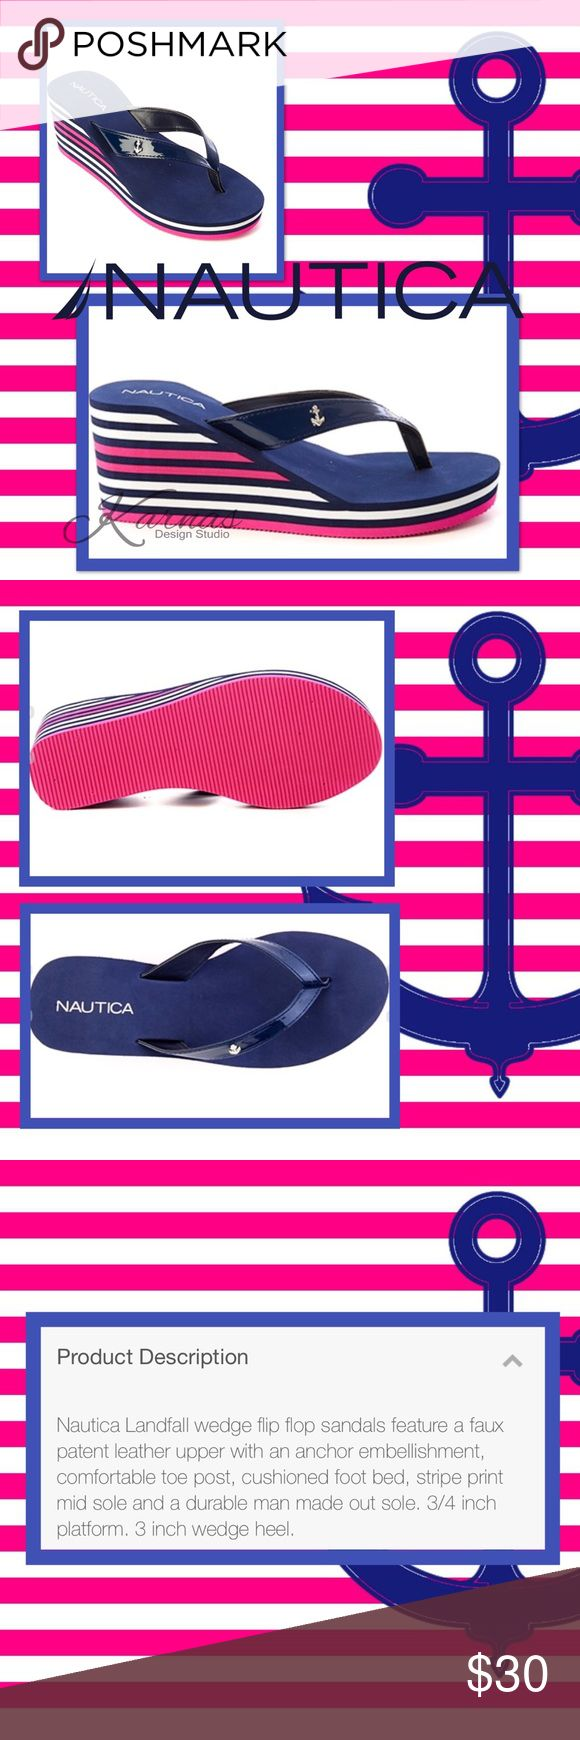 NAUTICA Landfall Wedge Sandals Flip Flops Sz 8 I love love love this color scheme! Beautiful Peacoat Navy, Bright Pink, and White wedges. Size 8 with packaging and box included. Please ask any questions. I ship daily. Thank you! 😍😘 Nautica Shoes Sandals